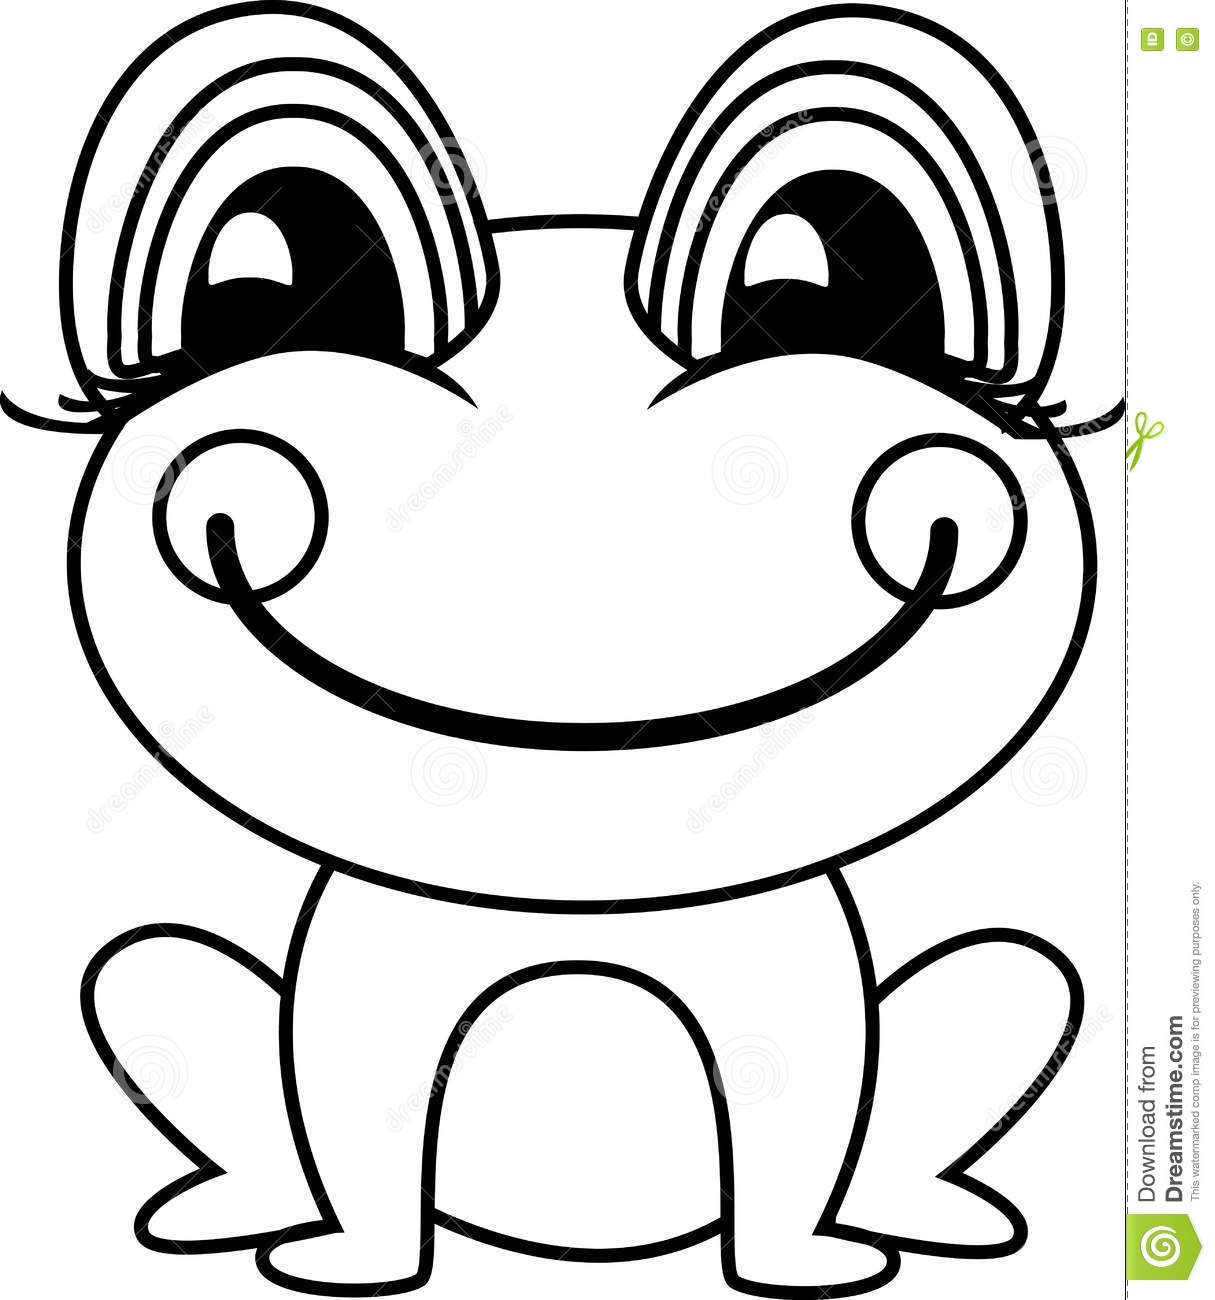 Simple Frog Or Toad Vector Illustration Stock Illustration